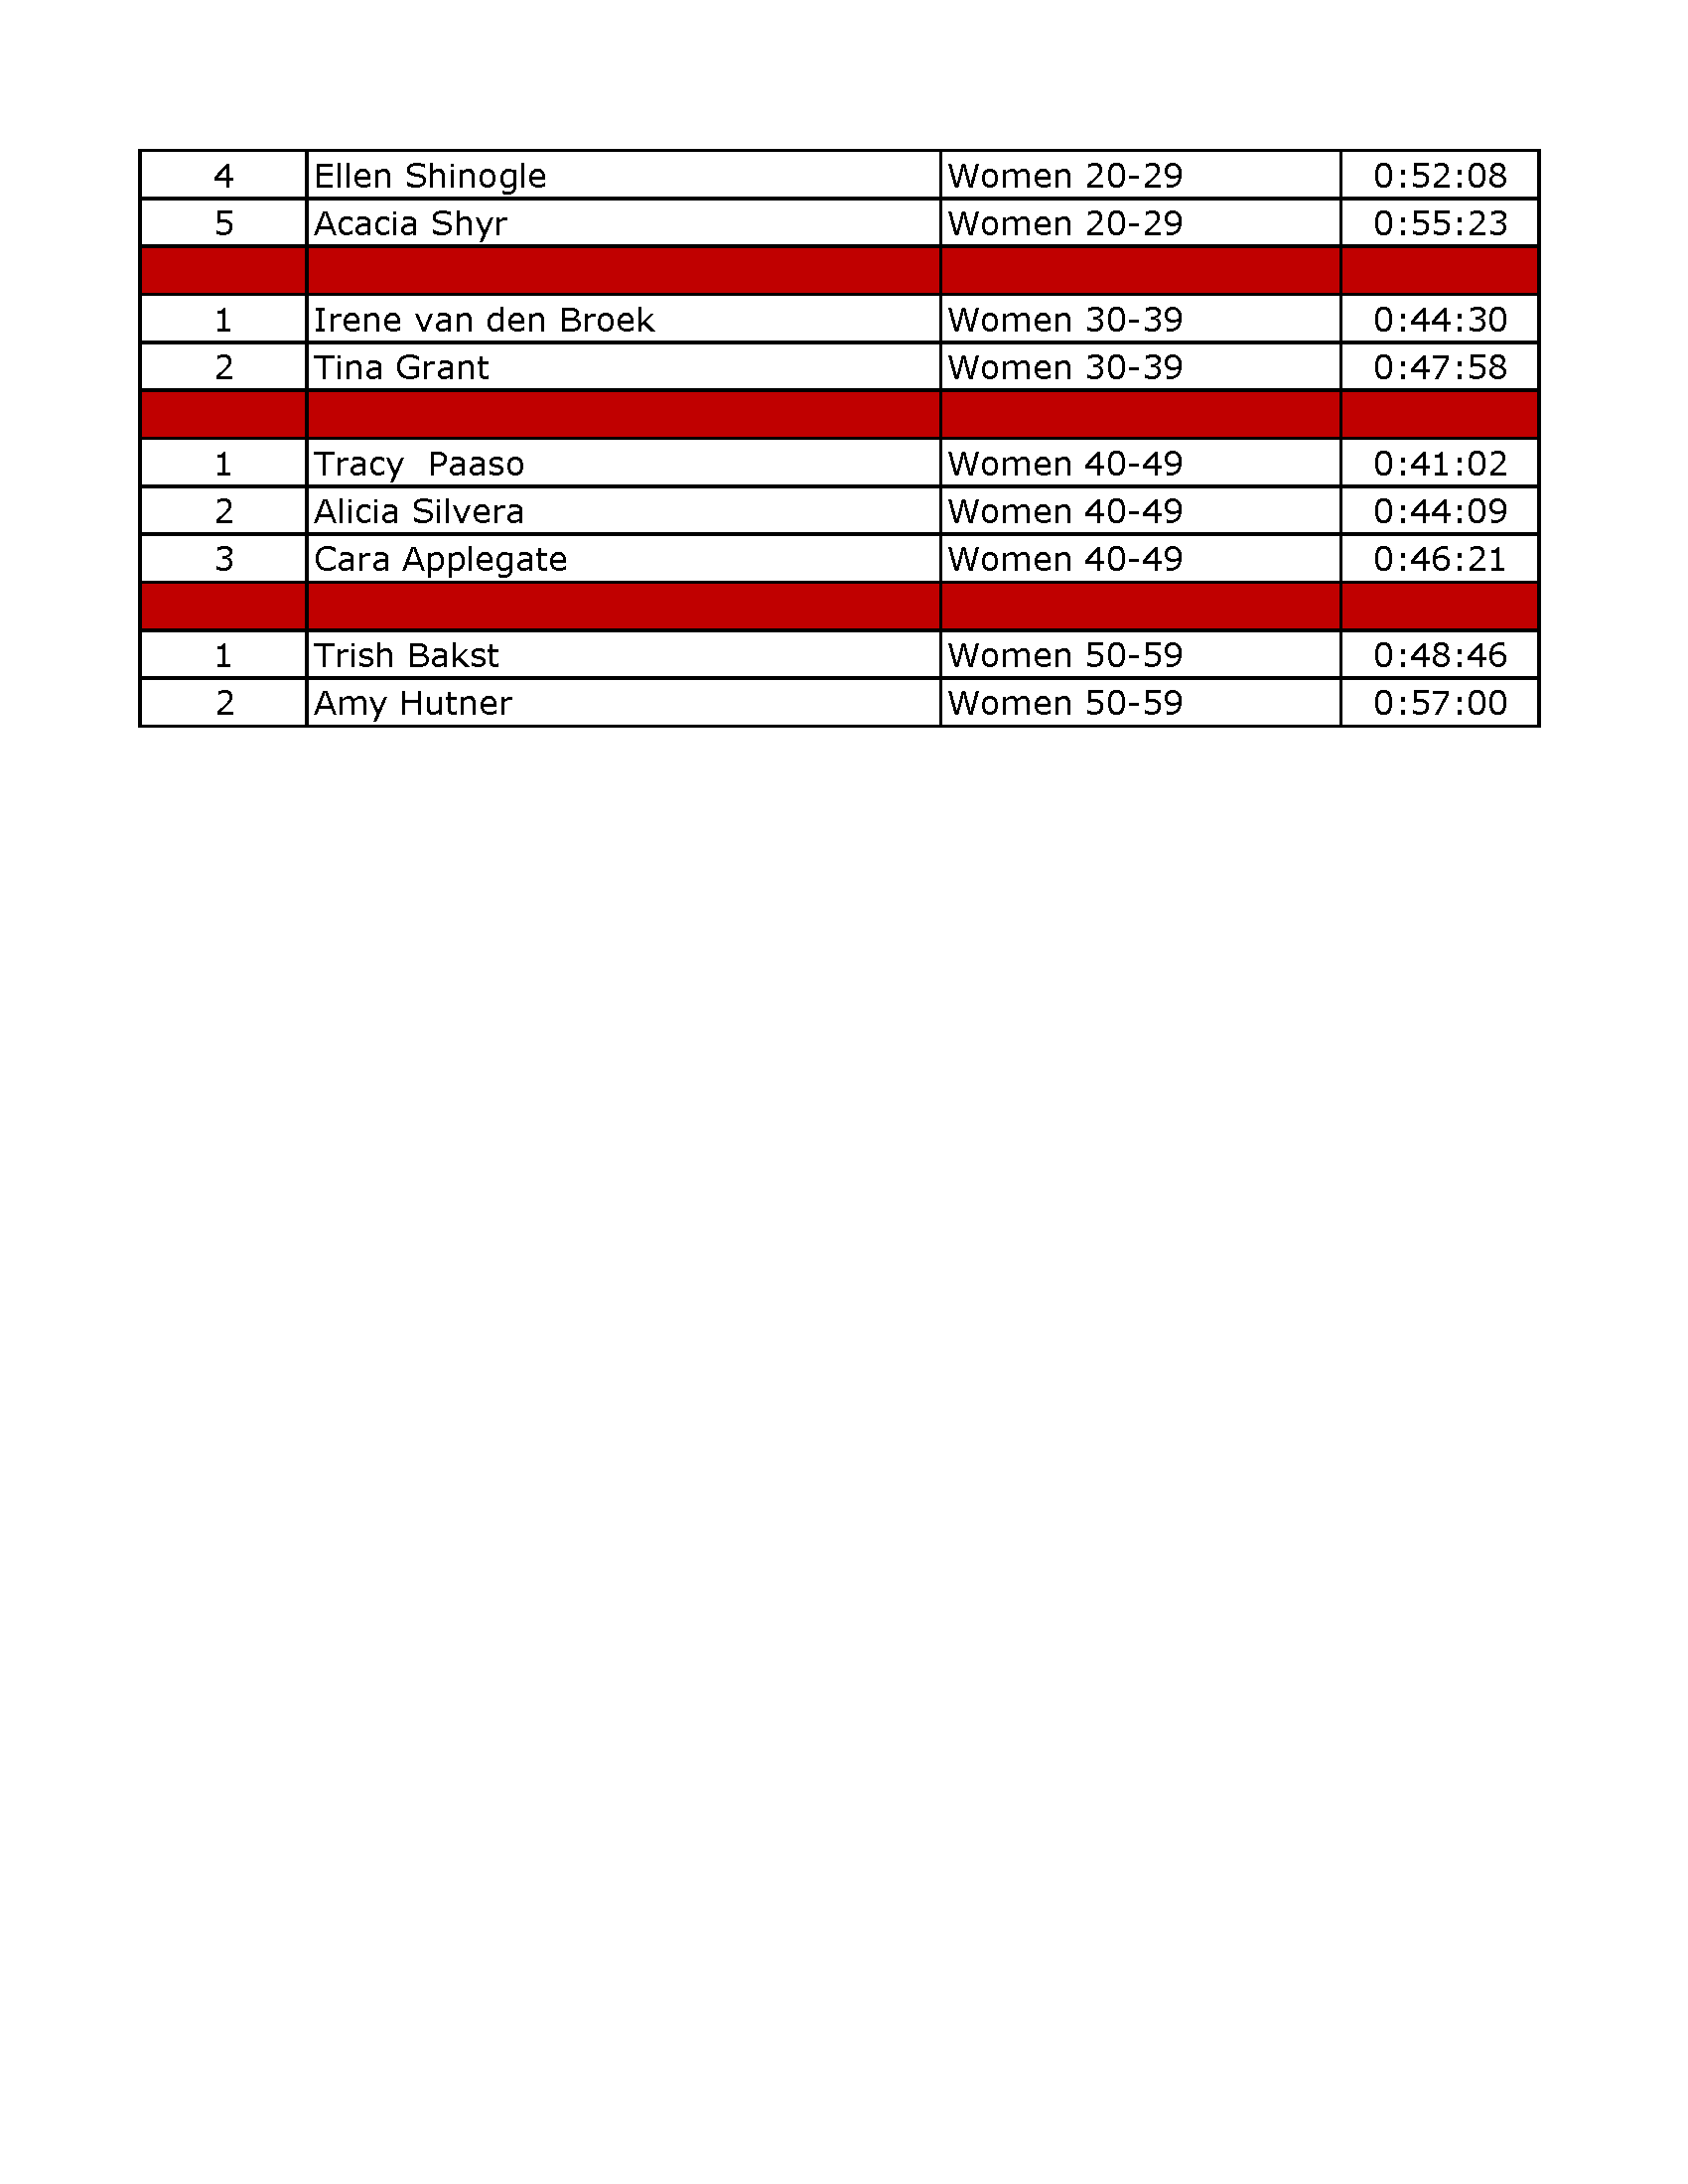 2017 Piuma results (9-17-17)_Page_3.png